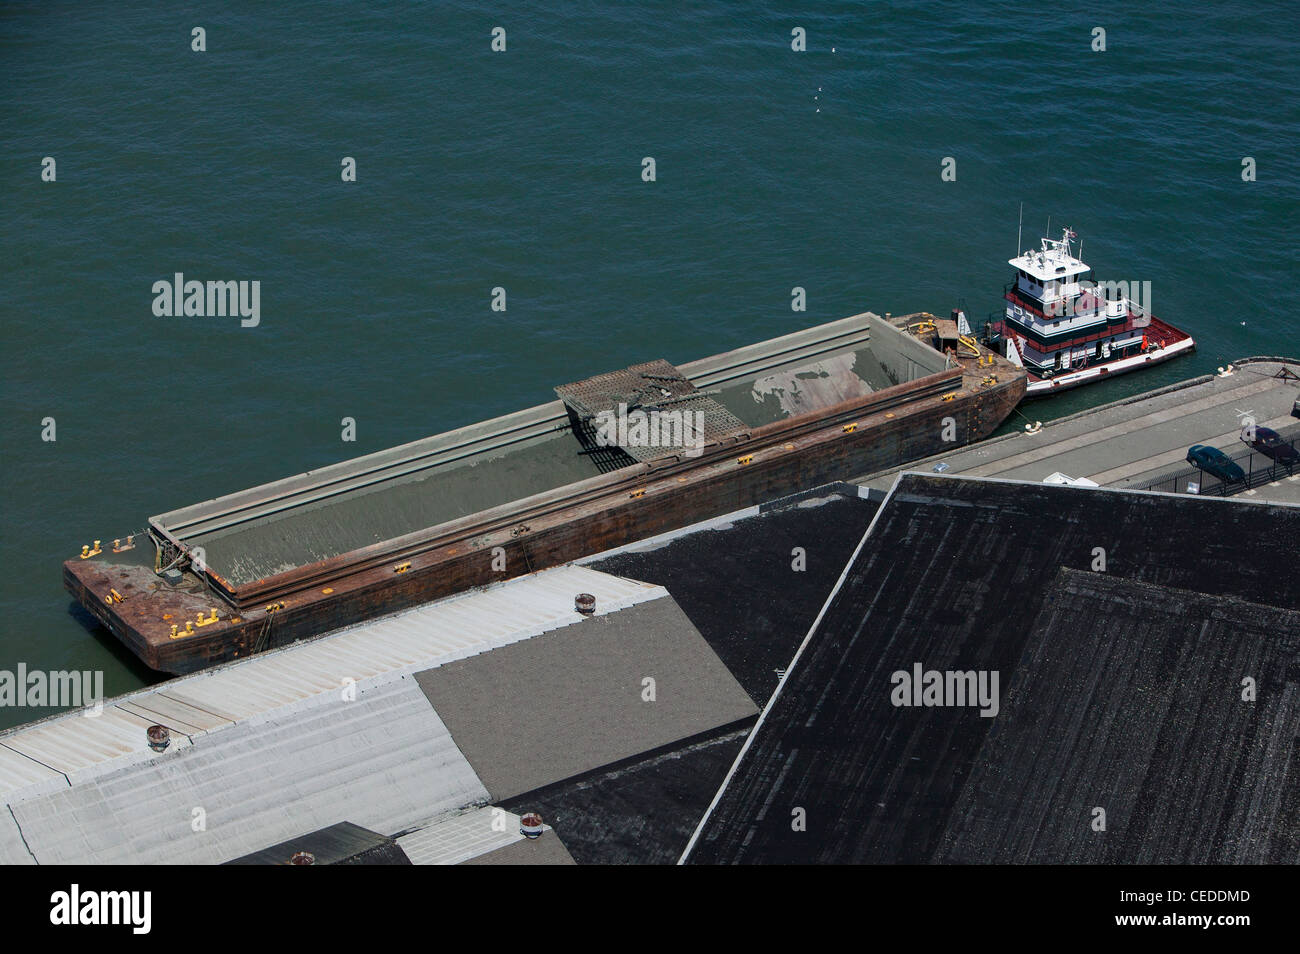 aerial photograph tug boat and barge at San Francisco pier - Stock Image